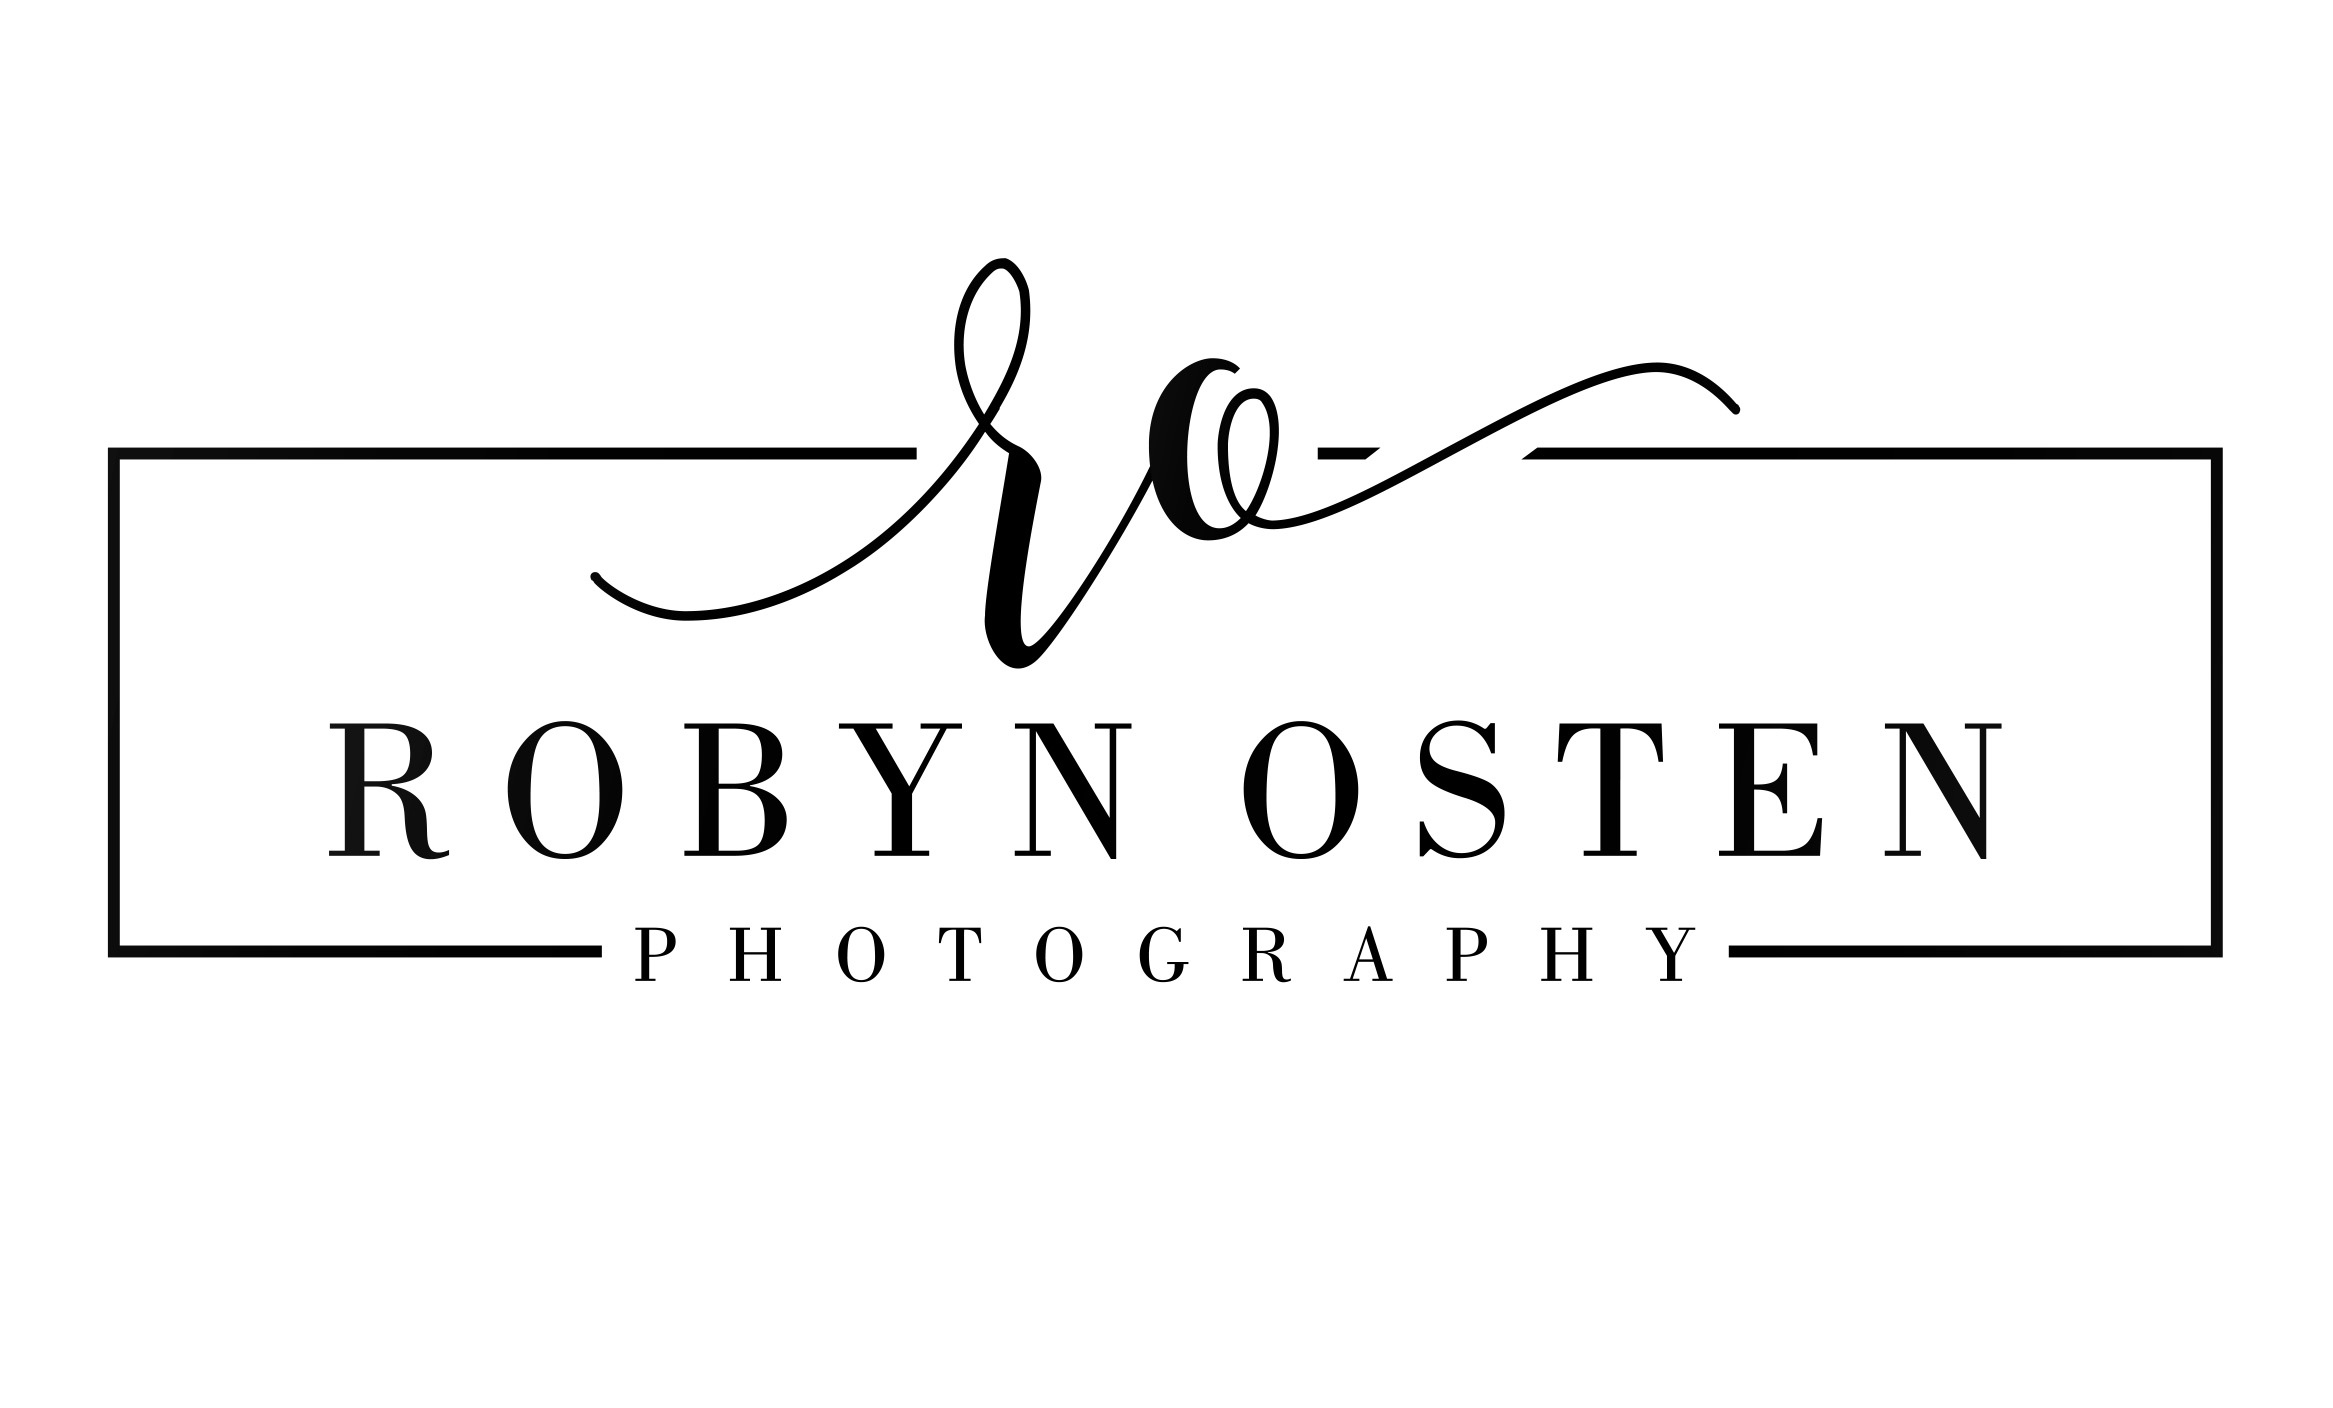 Robyn Osten Photography - 4901 Springarden Dr.Suite ABaltimore • Maryland • 21209410.575.3629 / robyn@robynosten.com